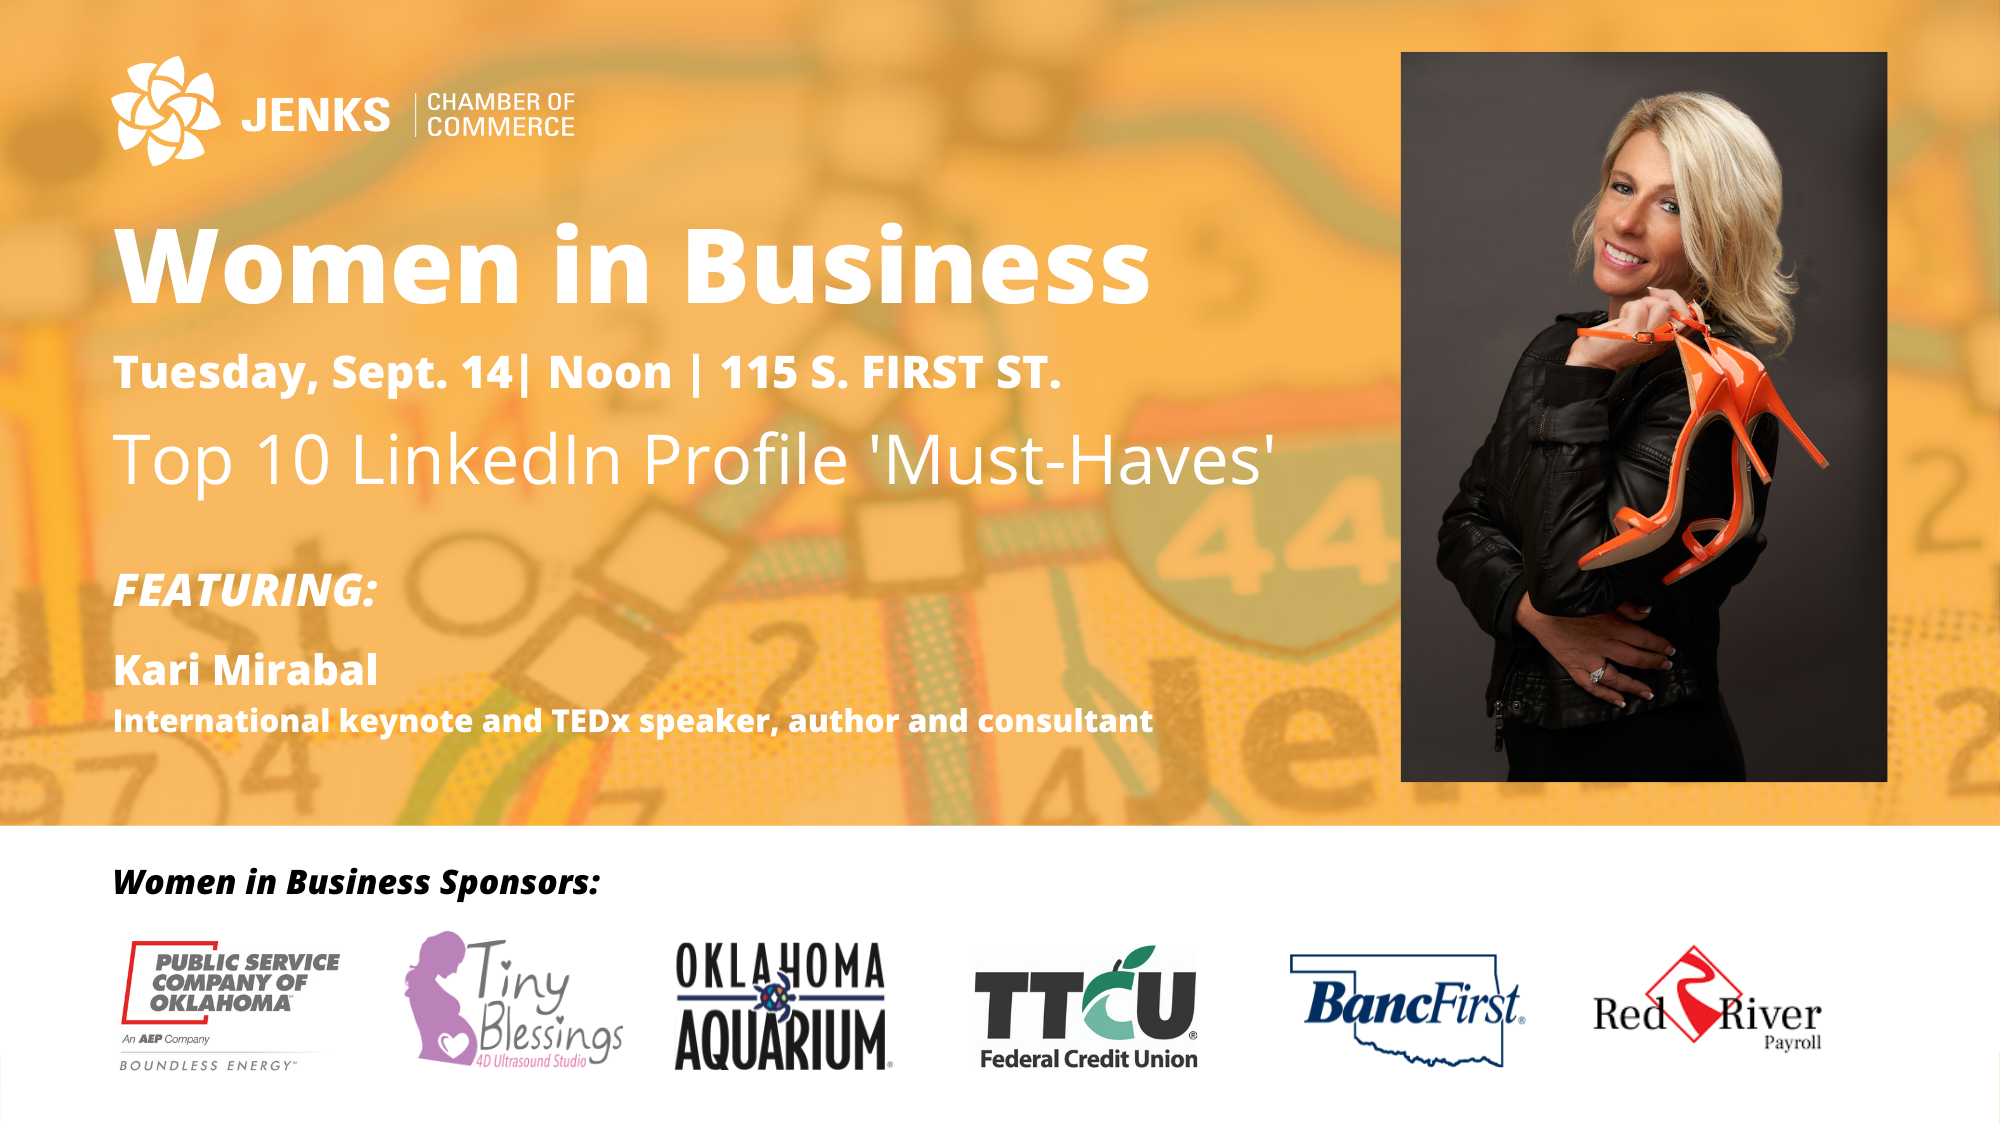 International speaker Kari Mirabal will present her top 10 LinkedIn profile 'must-haves' at the Women in Business Luncheon on